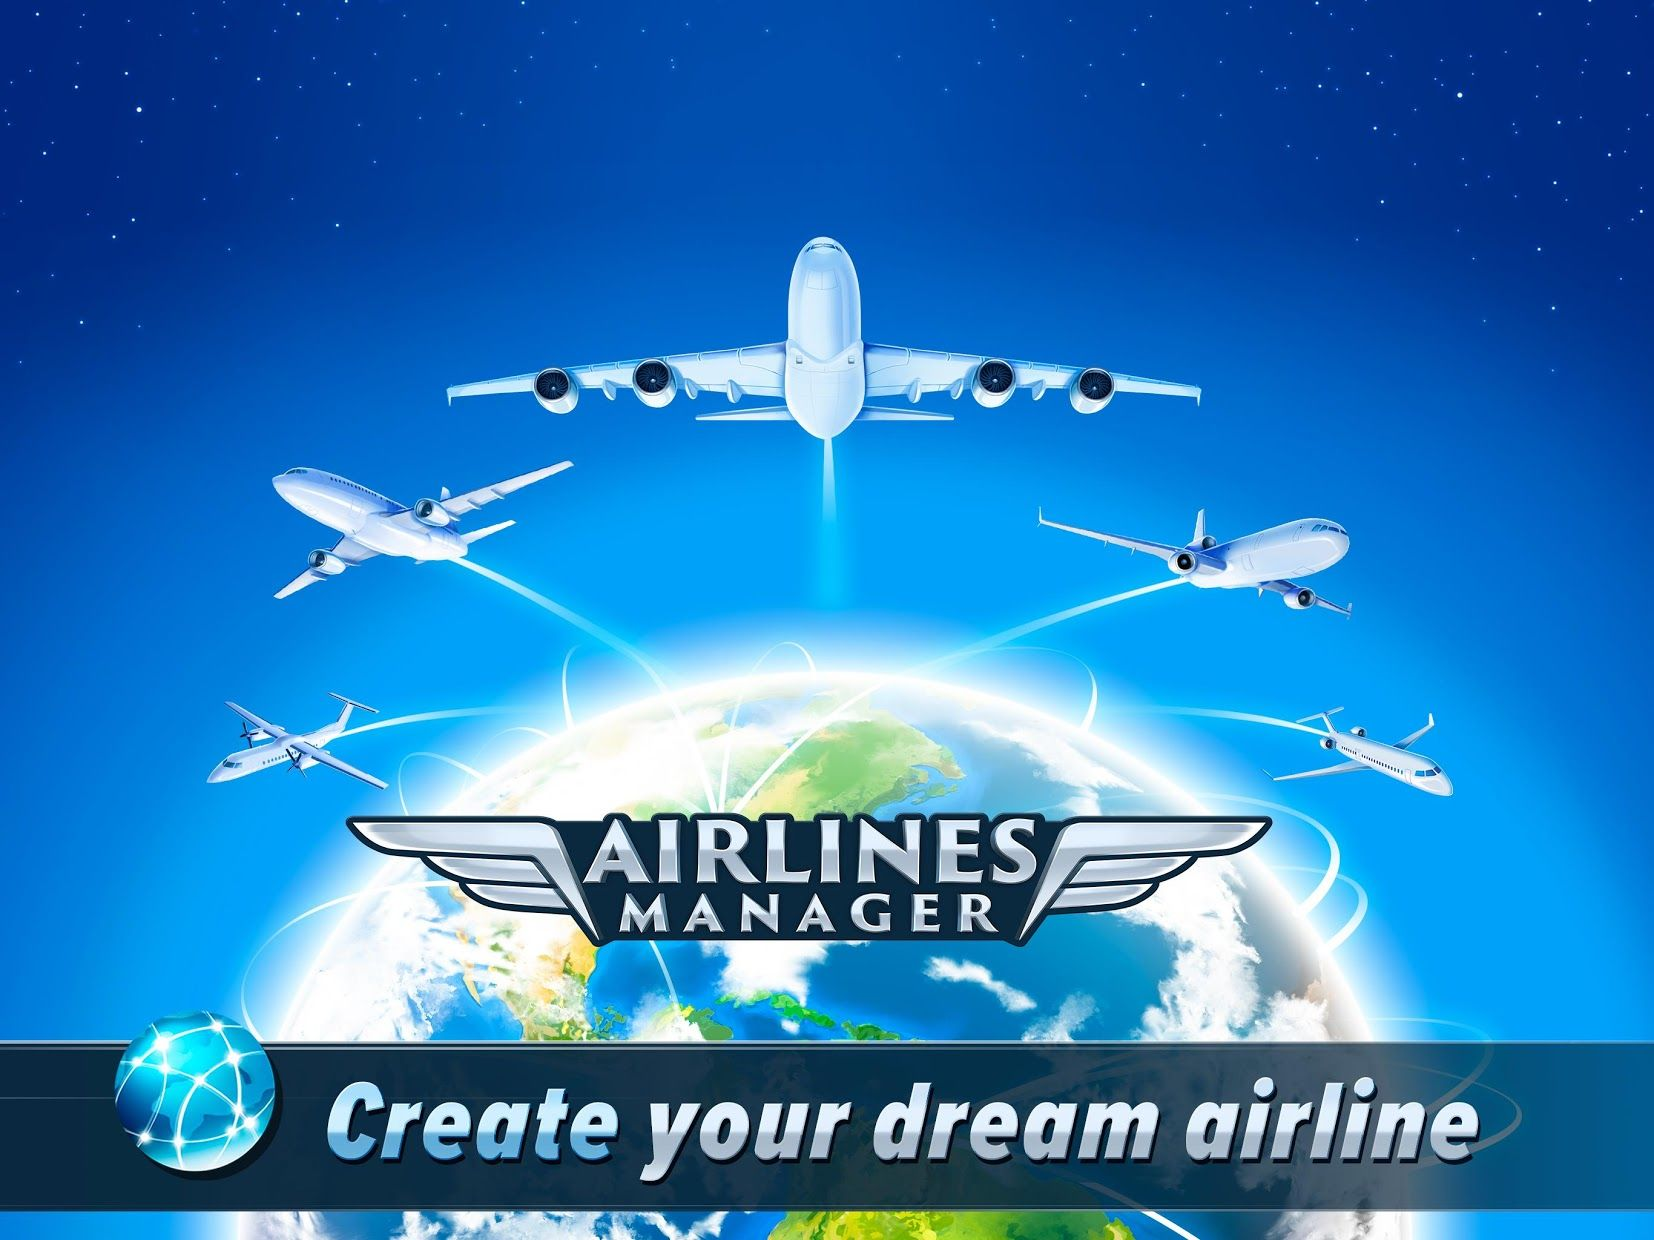 Airlines Manager - Tycoon 2018 游戏截图1